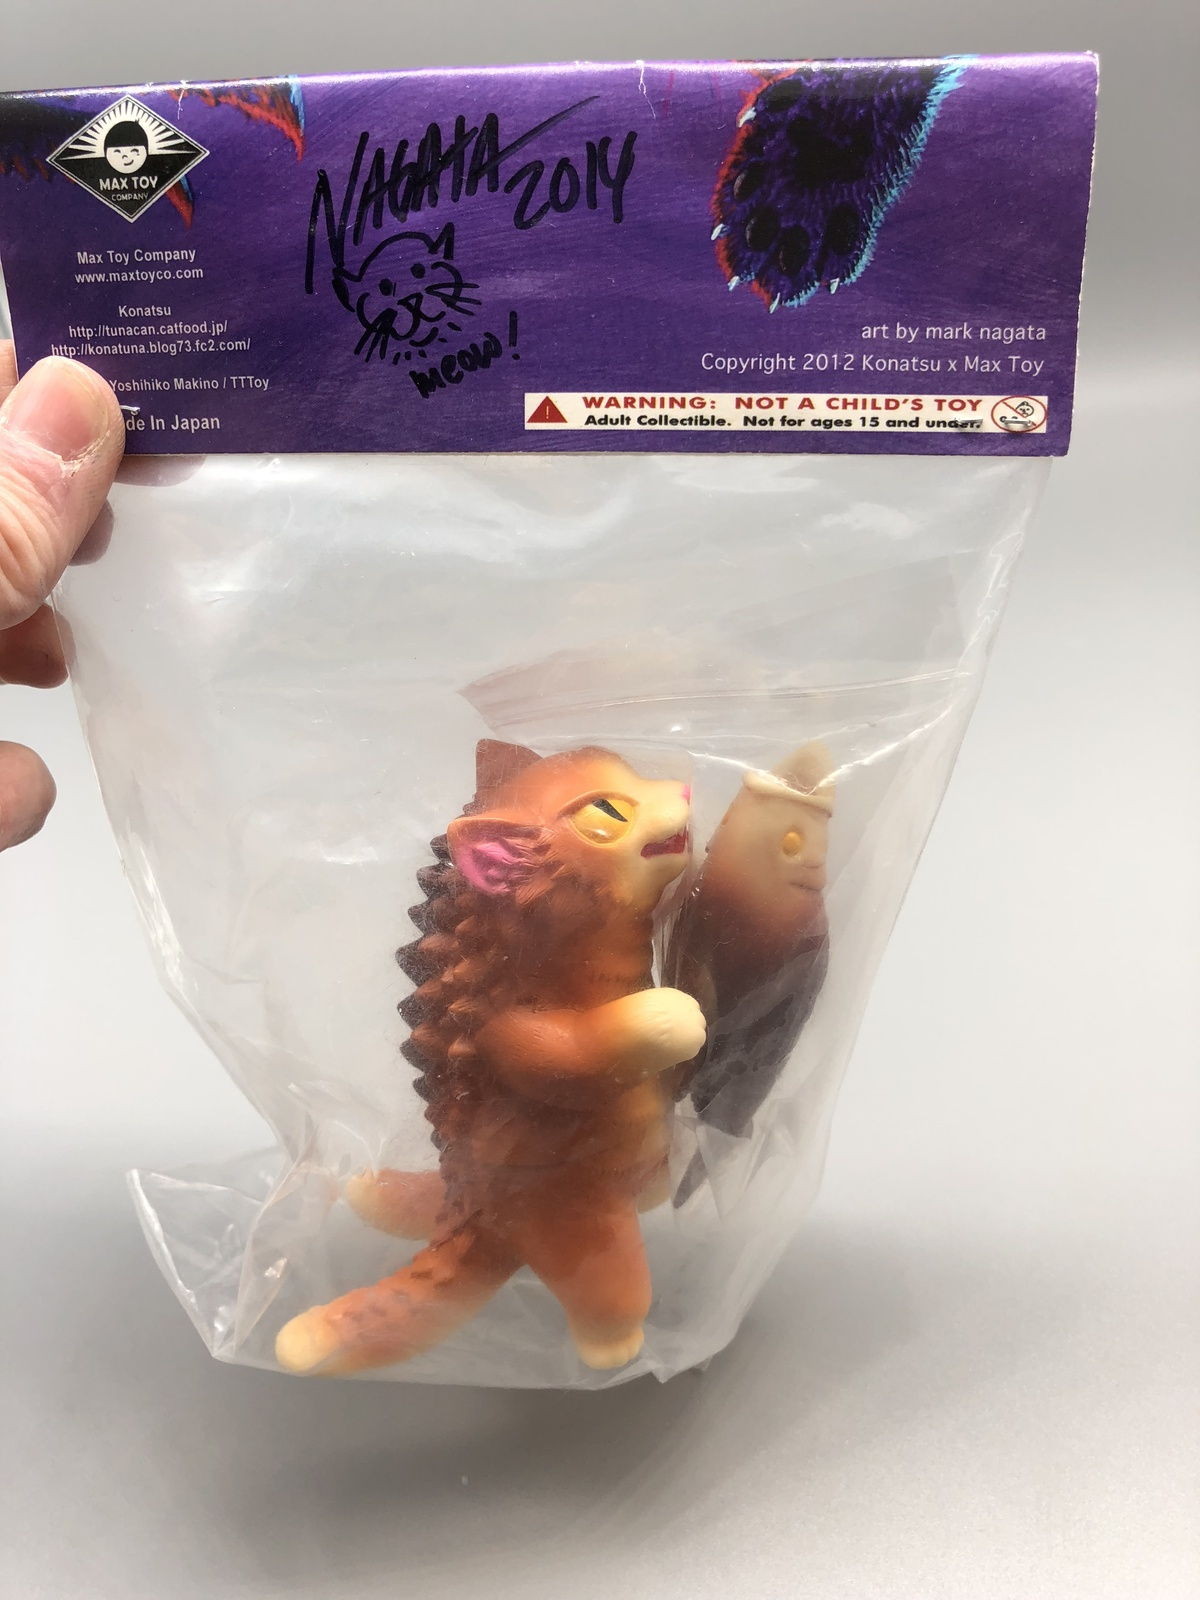 Max Toy Pancake Negora Mint in Bag - Signed by Mark Nagata